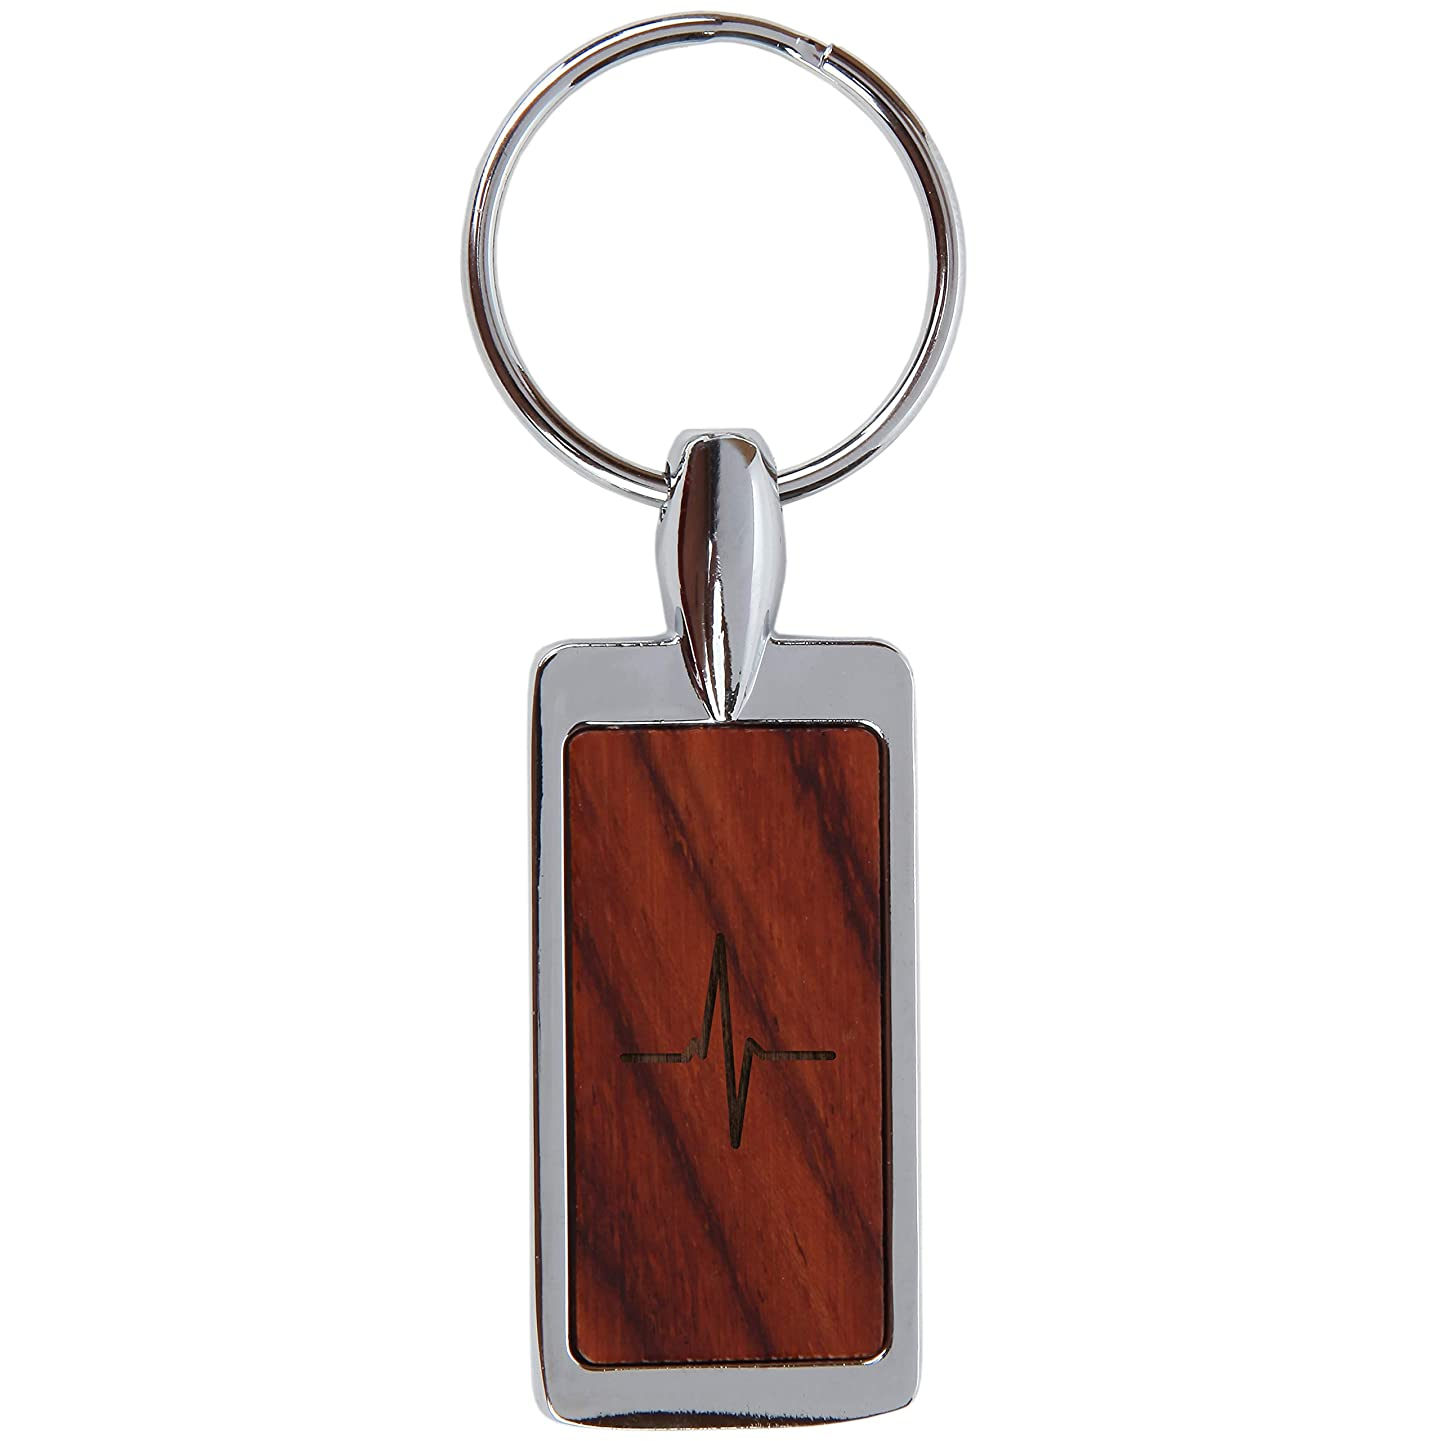 EKG Heartbeat Rosewood Keychain with Laser Engraved Design - Wood Keychain for Men and Women - Engraved Keyring Gift